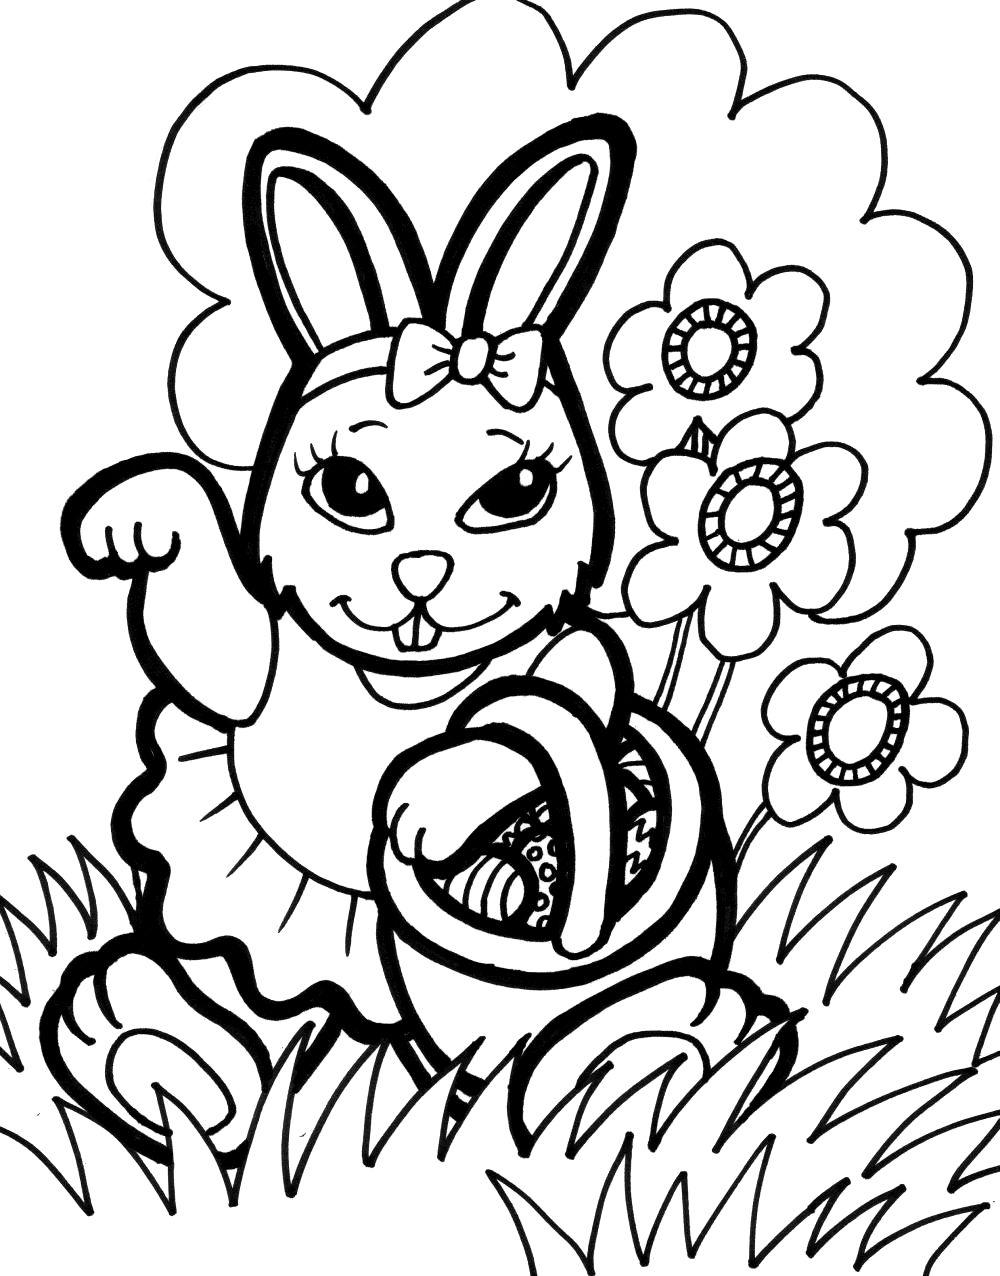 Free Coloring Pages for Kids  tlsbookscom